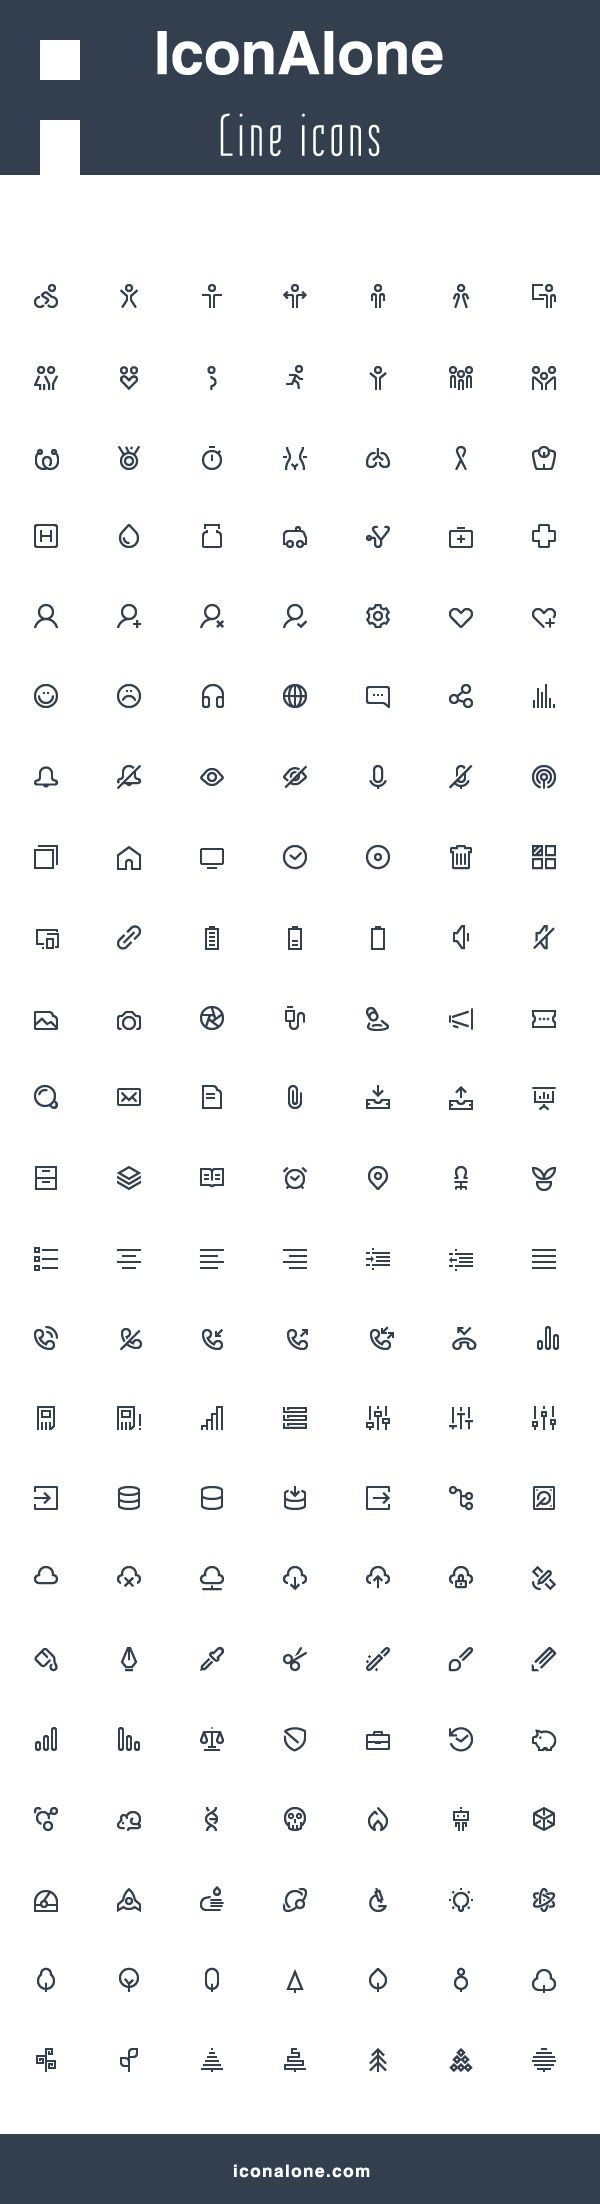 IconAlone line icons on Behance